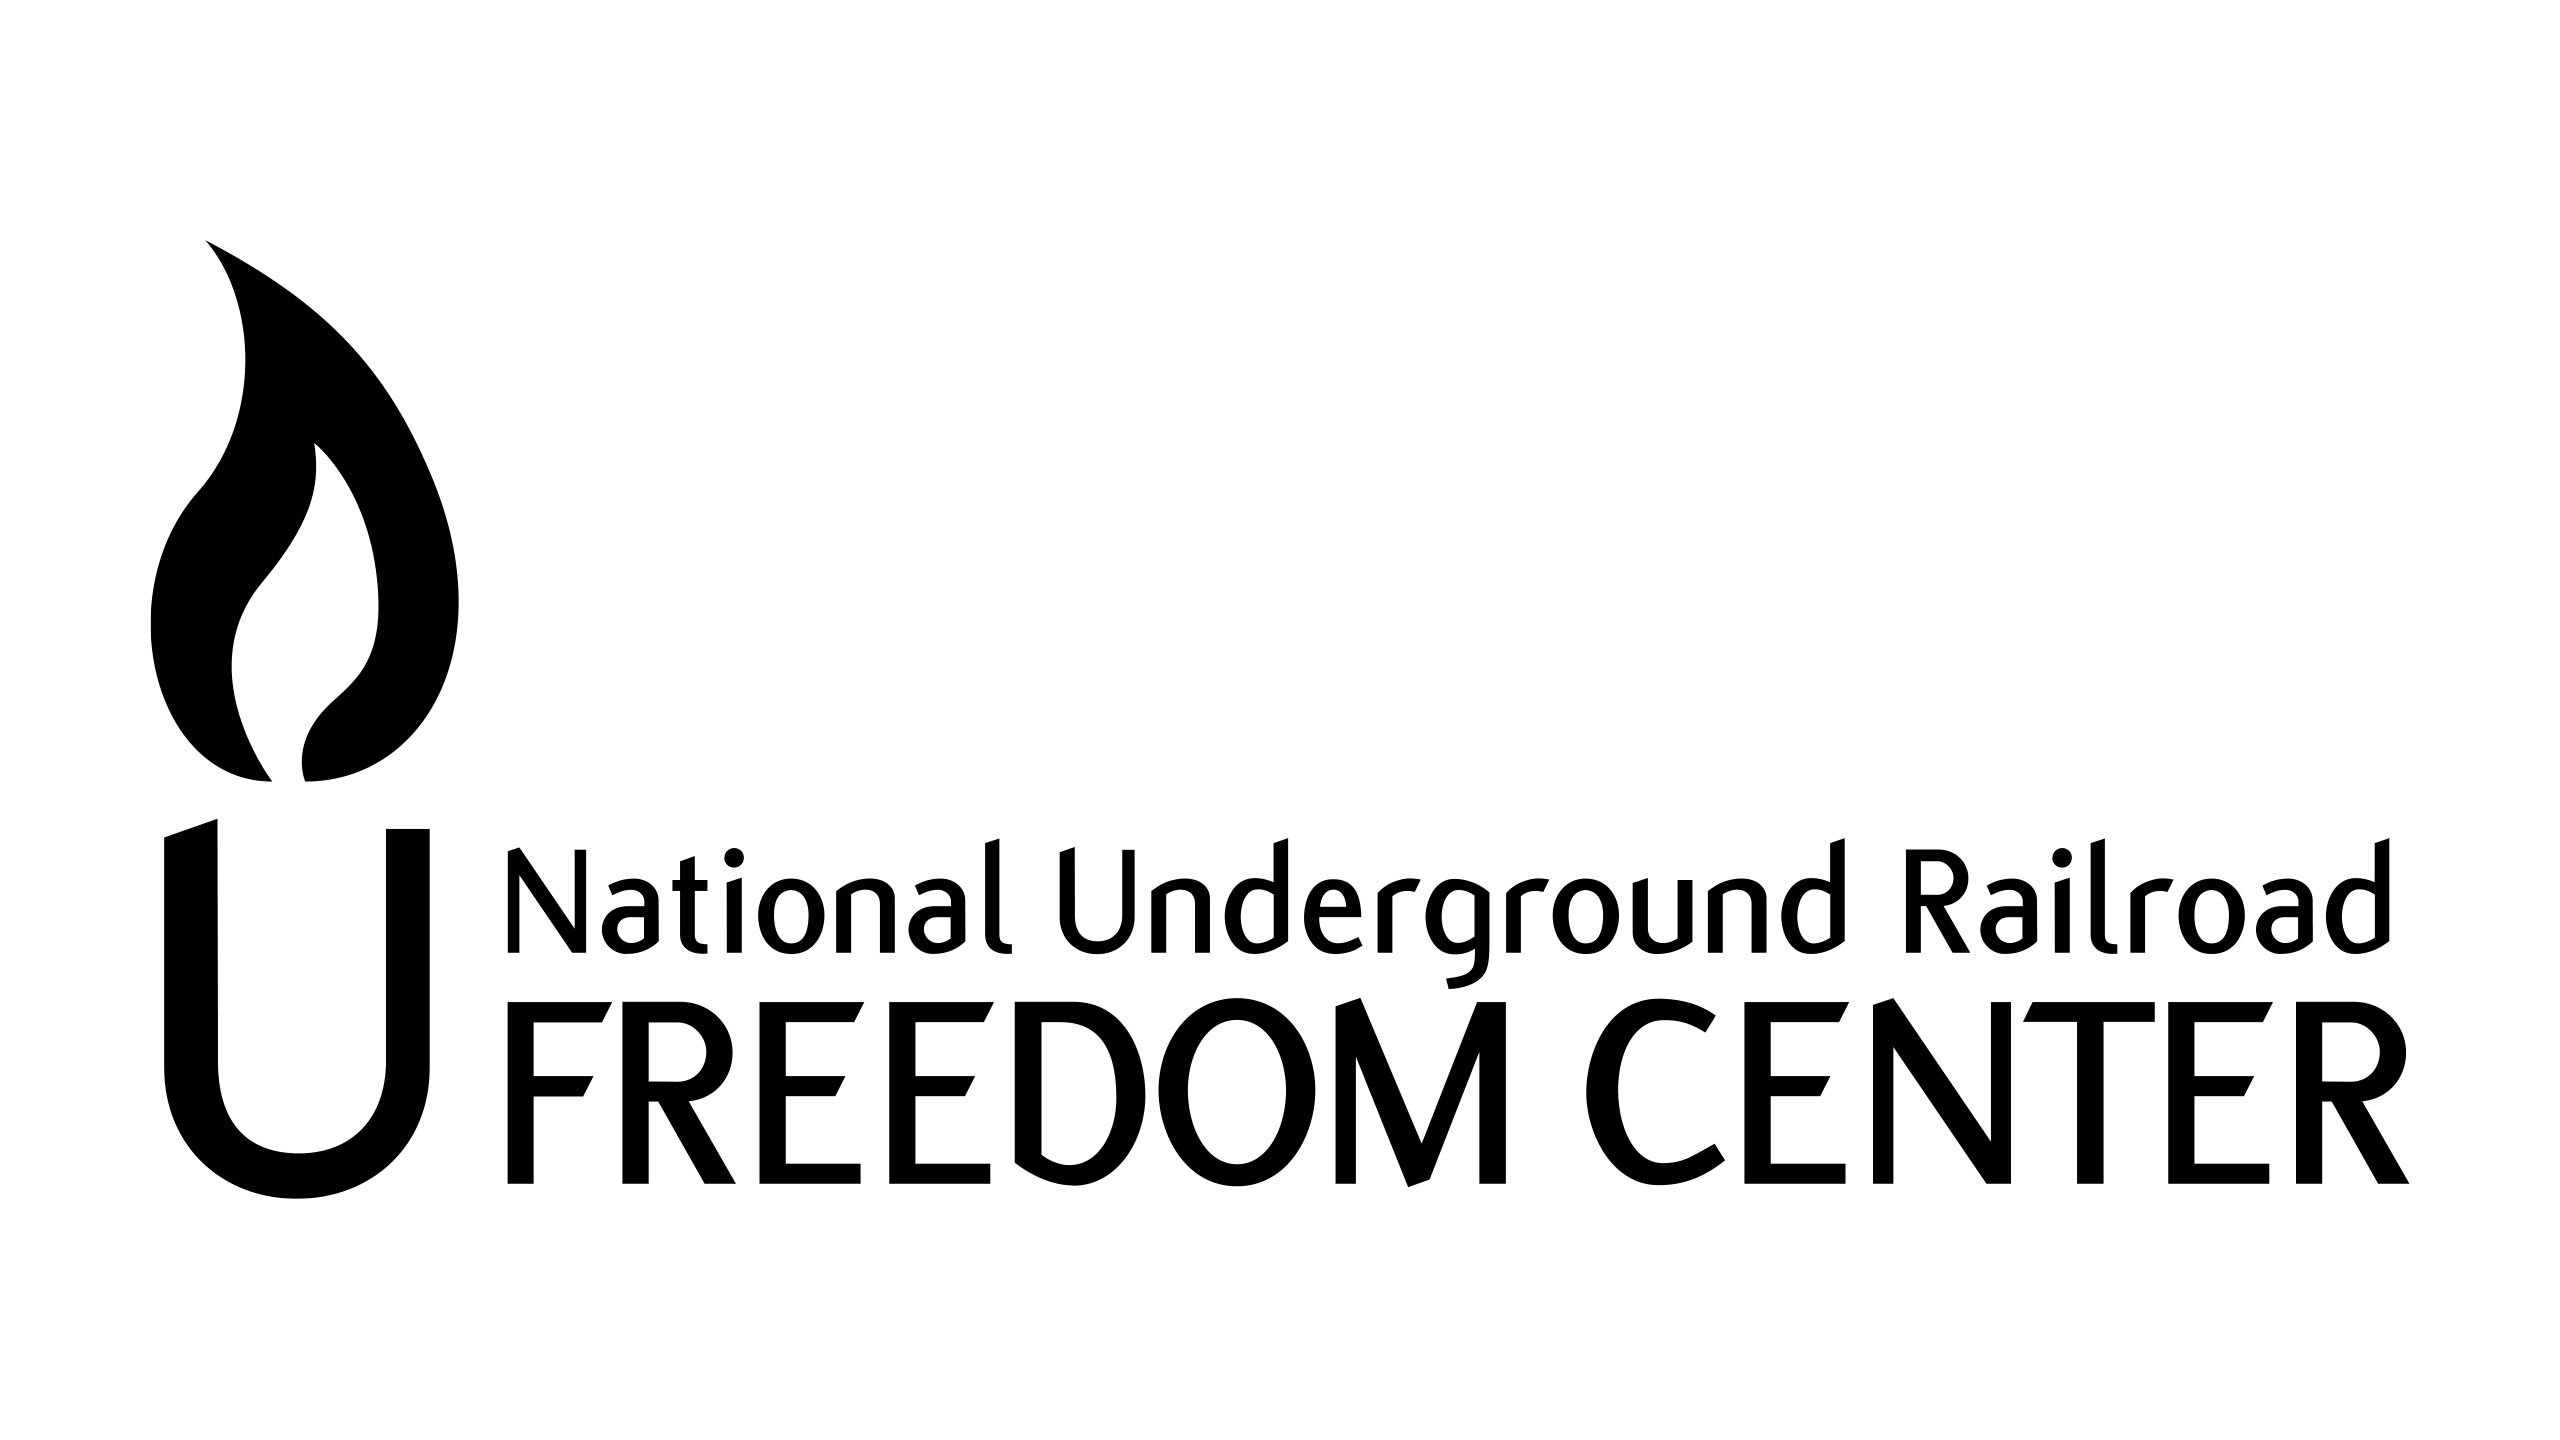 The National Underground Railroad Freedom Center